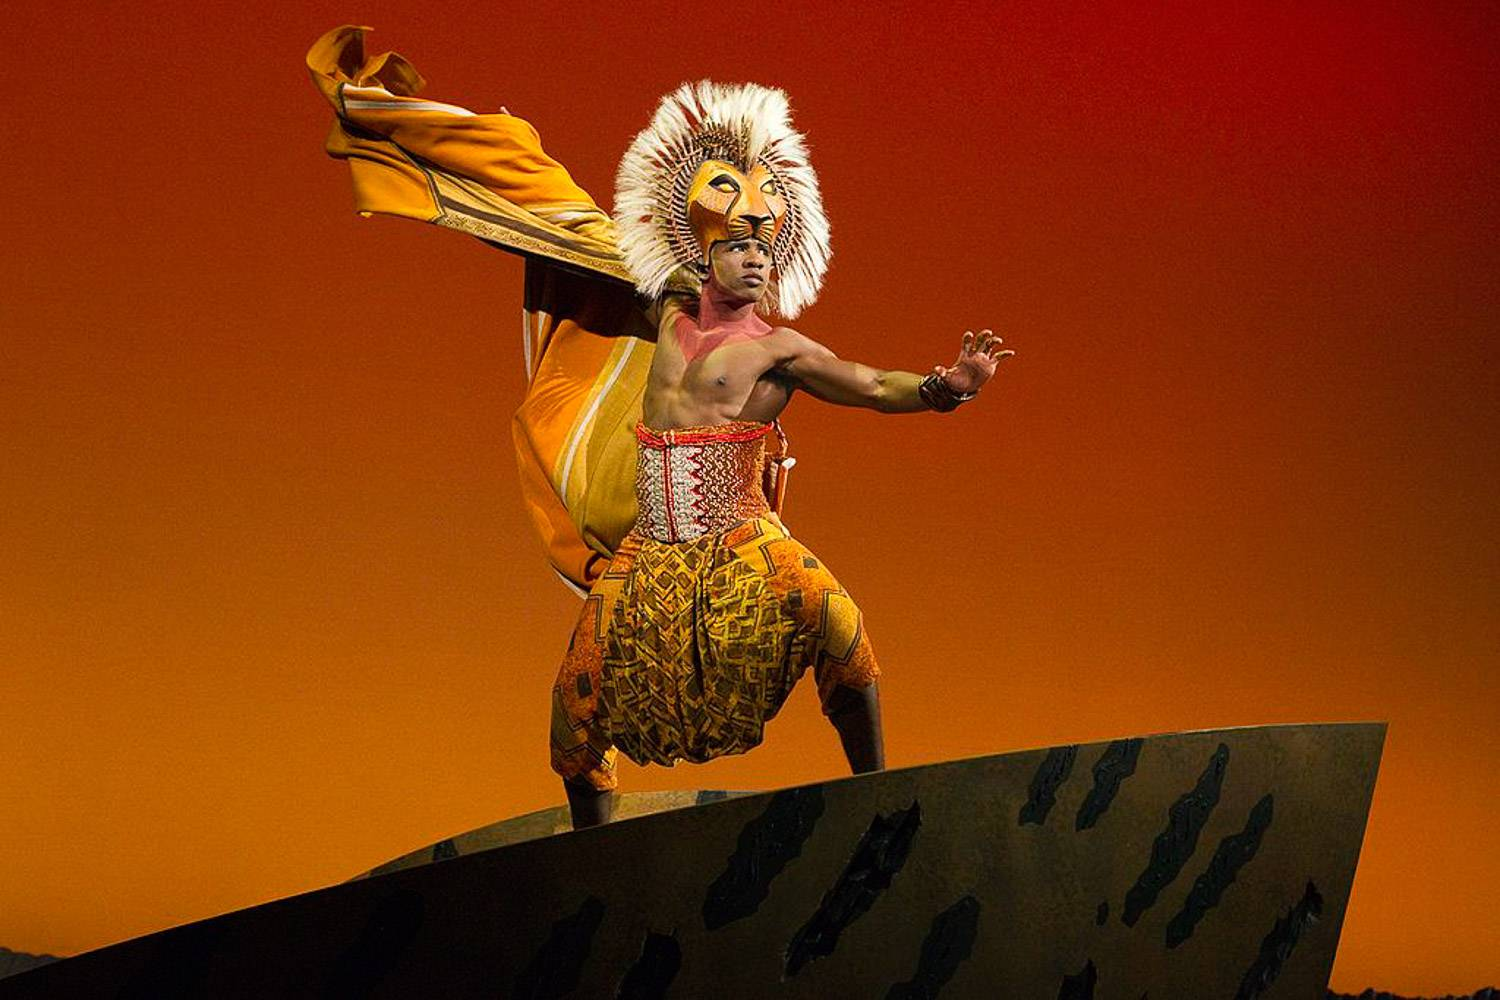 Image of performer dressed in Lion King costume on Broadway